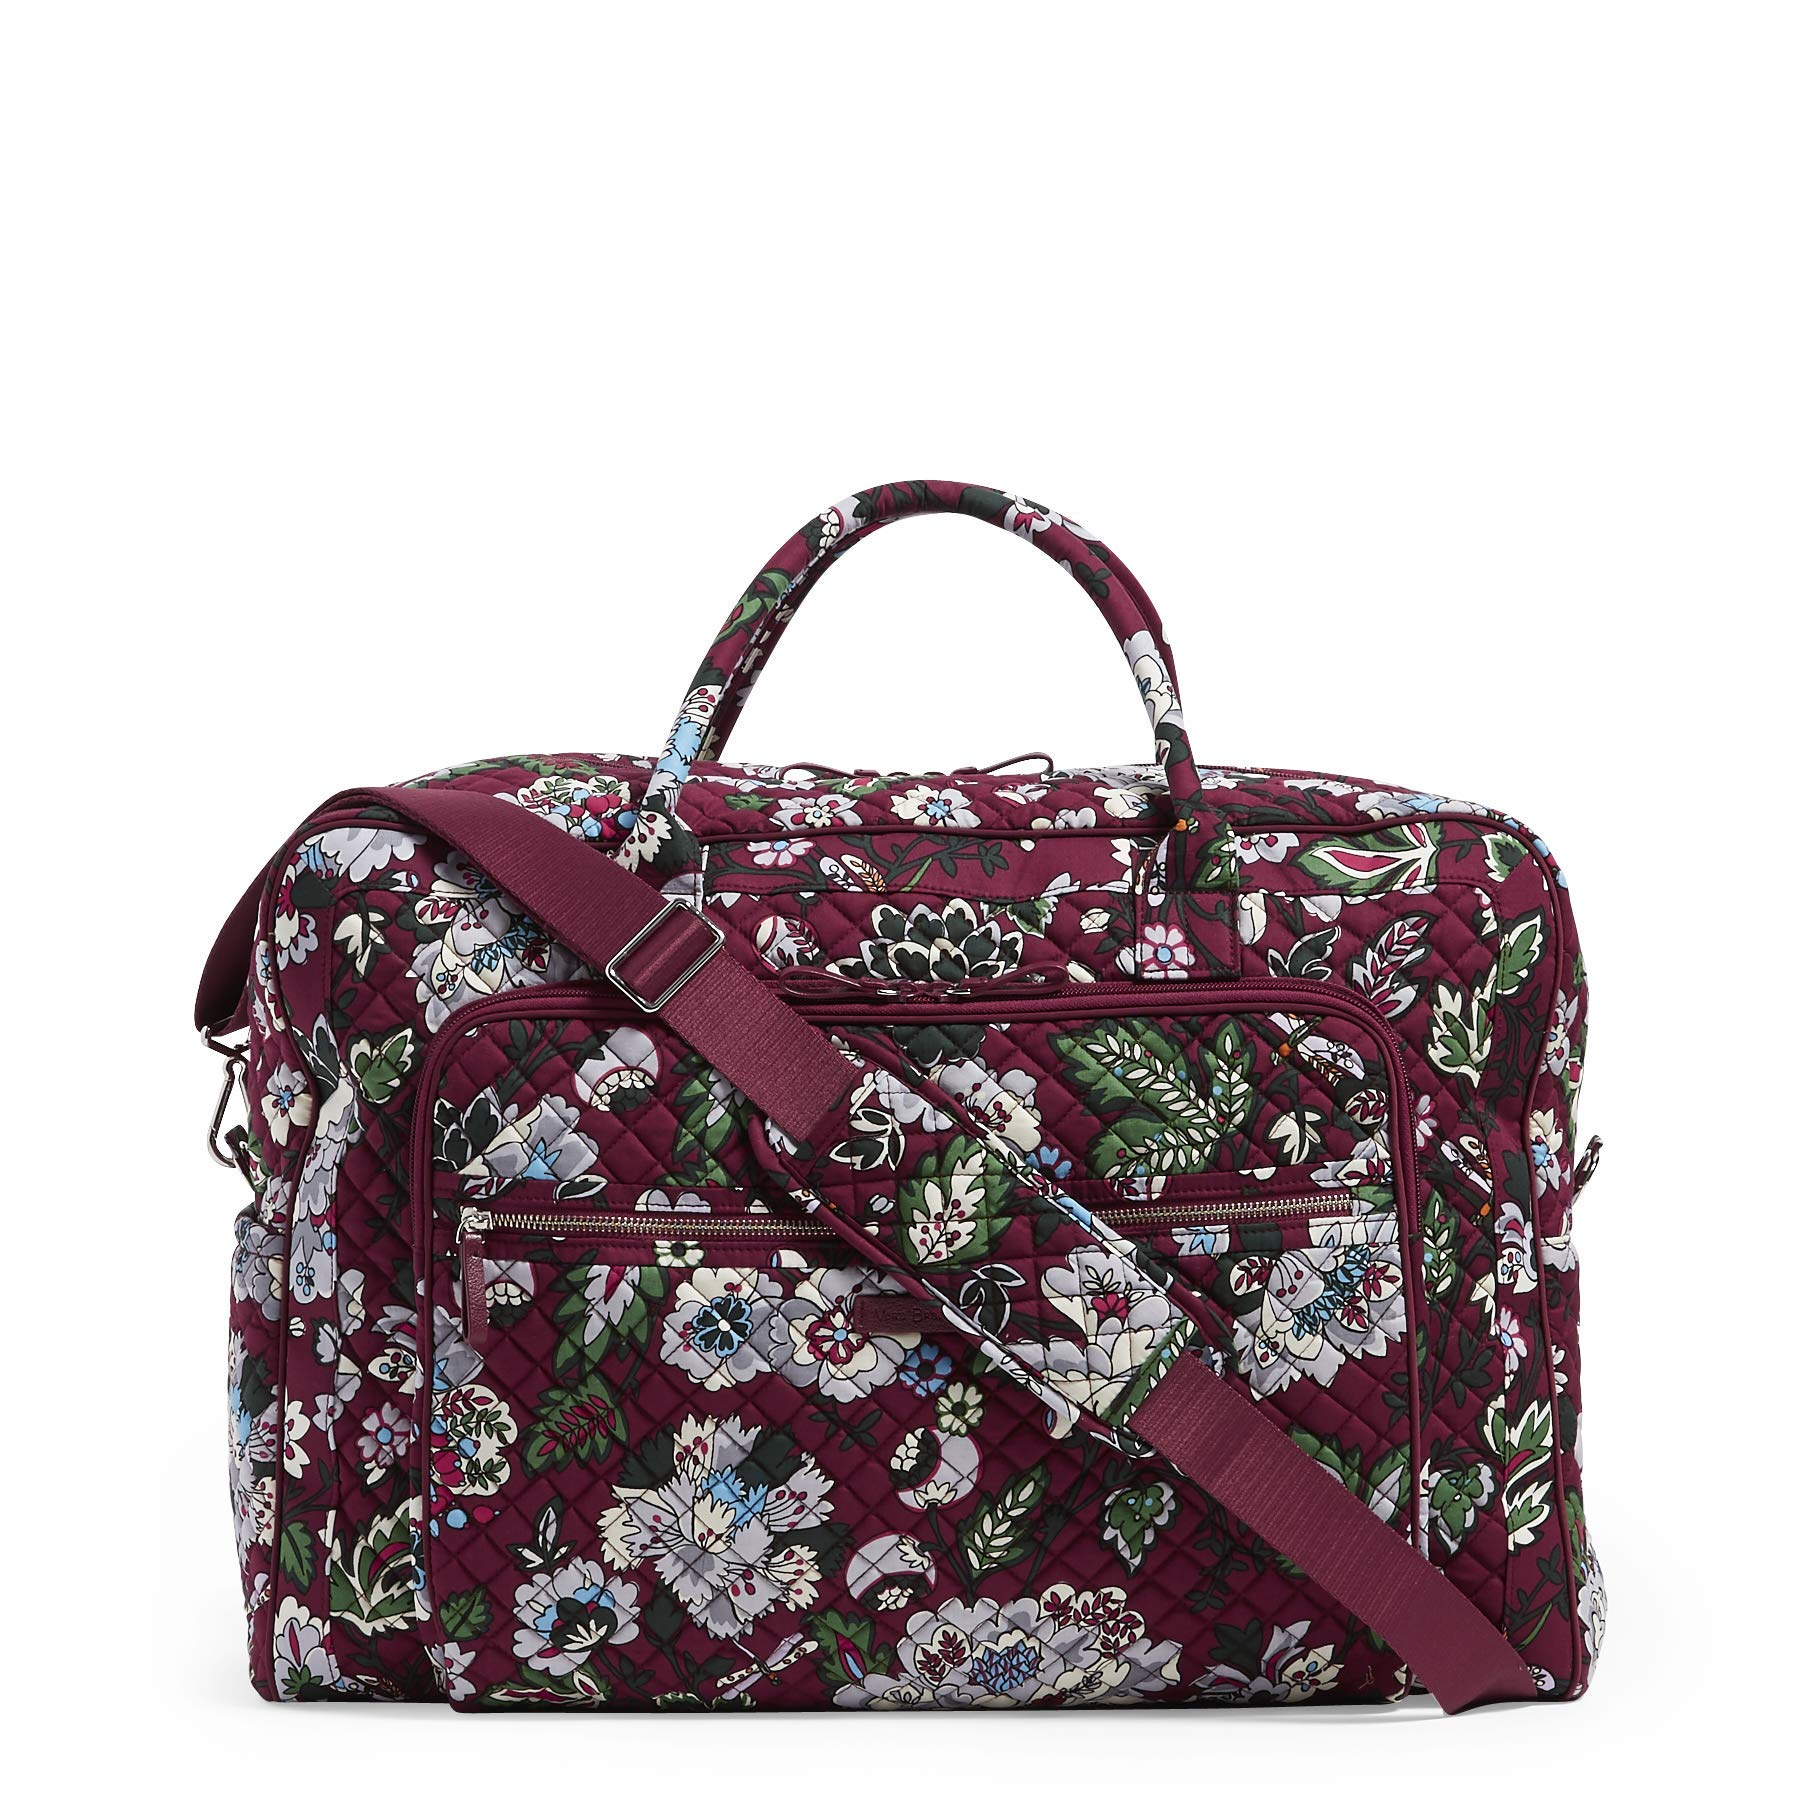 Vera Bradley Iconic Grand Weekender Travel Bag, Signature Cotton, bordeaux blooms by Vera Bradley (Image #3)